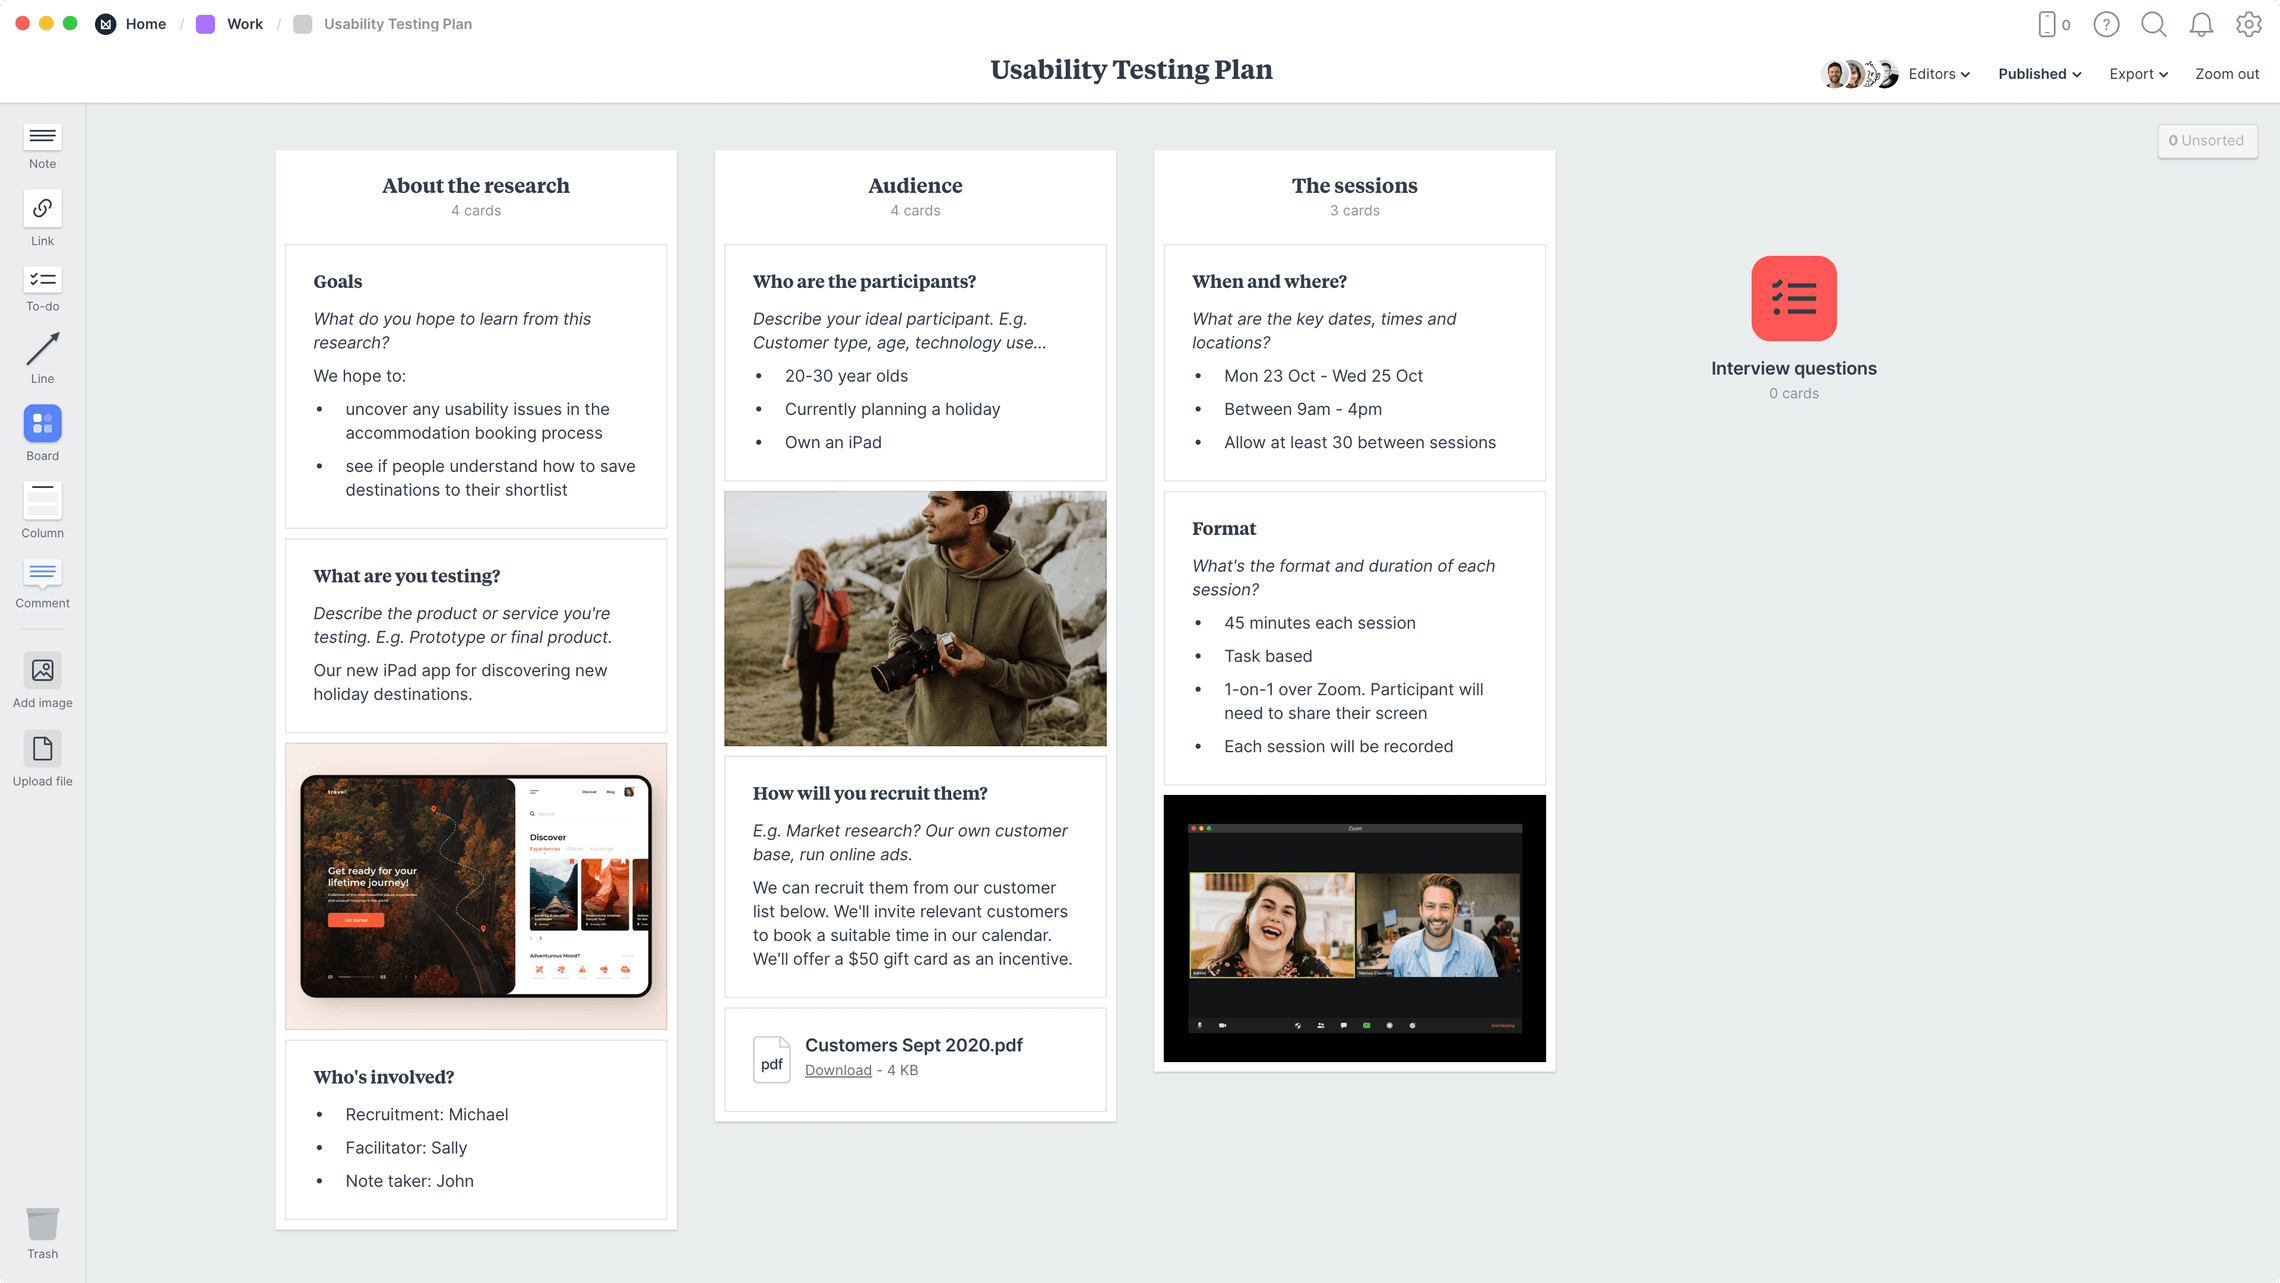 Usability Testing Plan Template, within the Milanote app